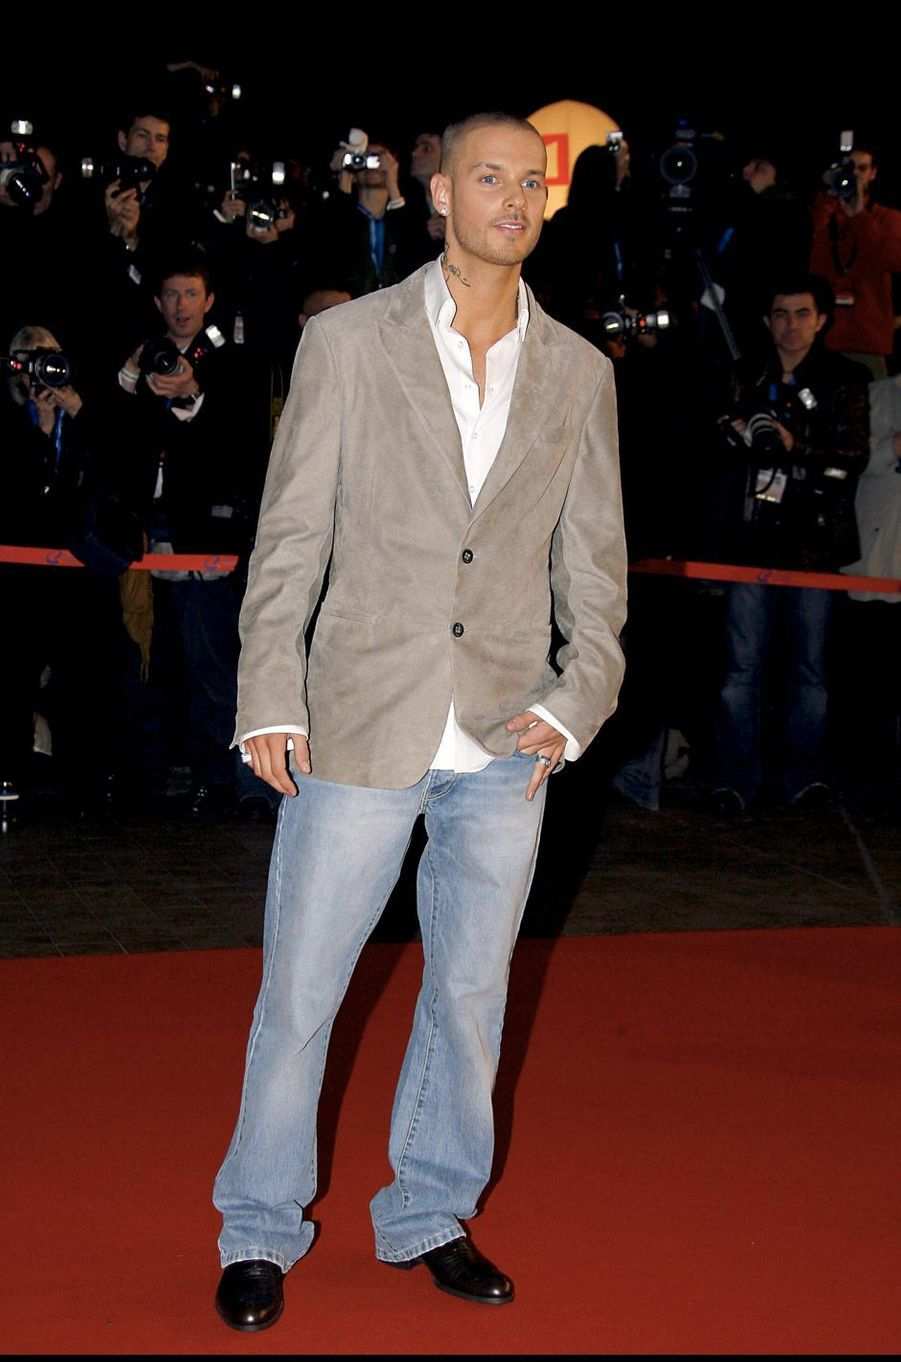 M. Pokora aux NRJ Music Awards en 2007